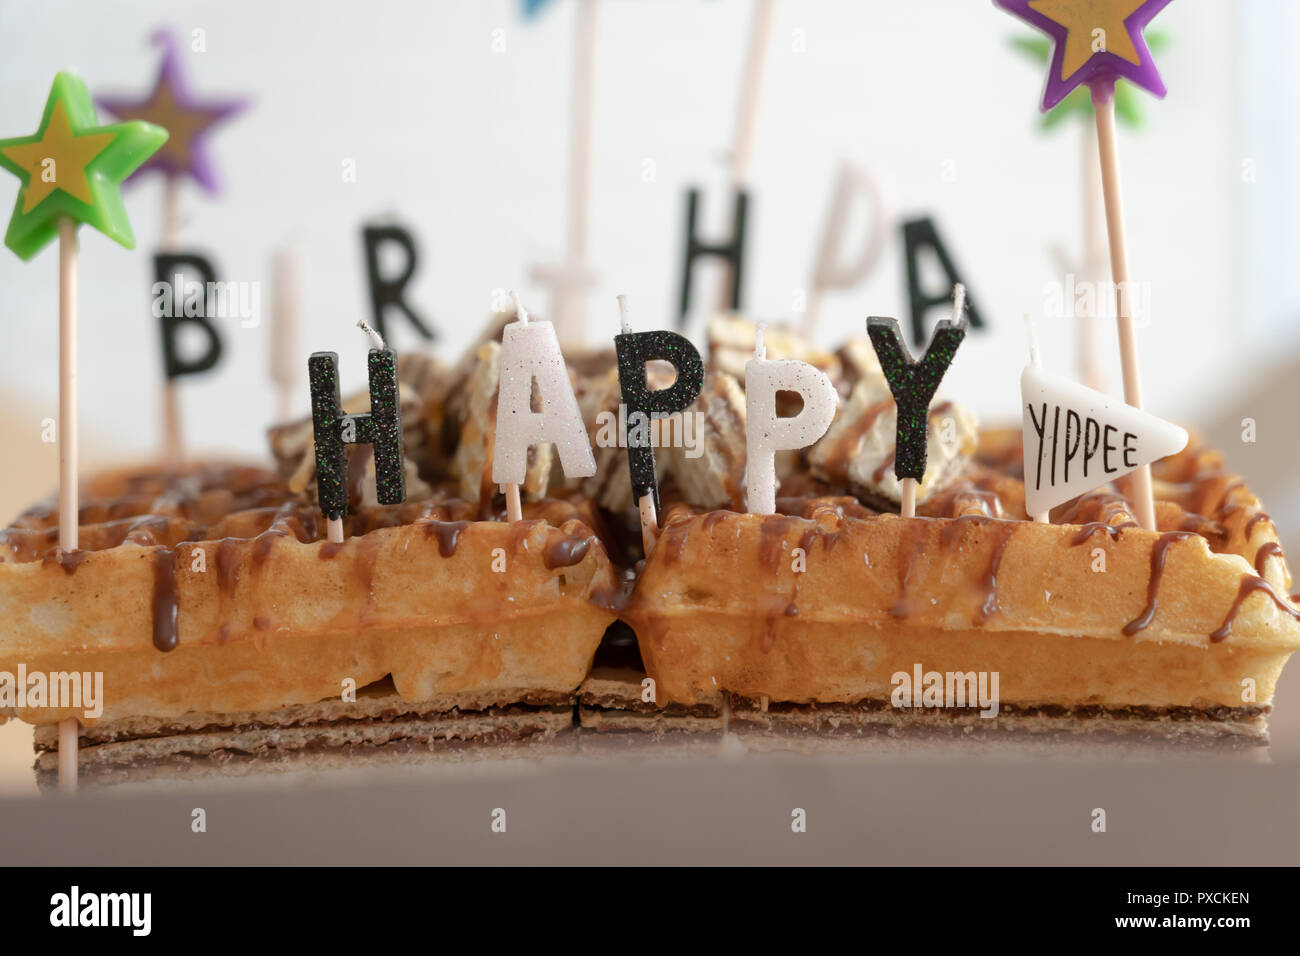 Birthday Cake With Waffles And Chocolate Ready To Eat At Party